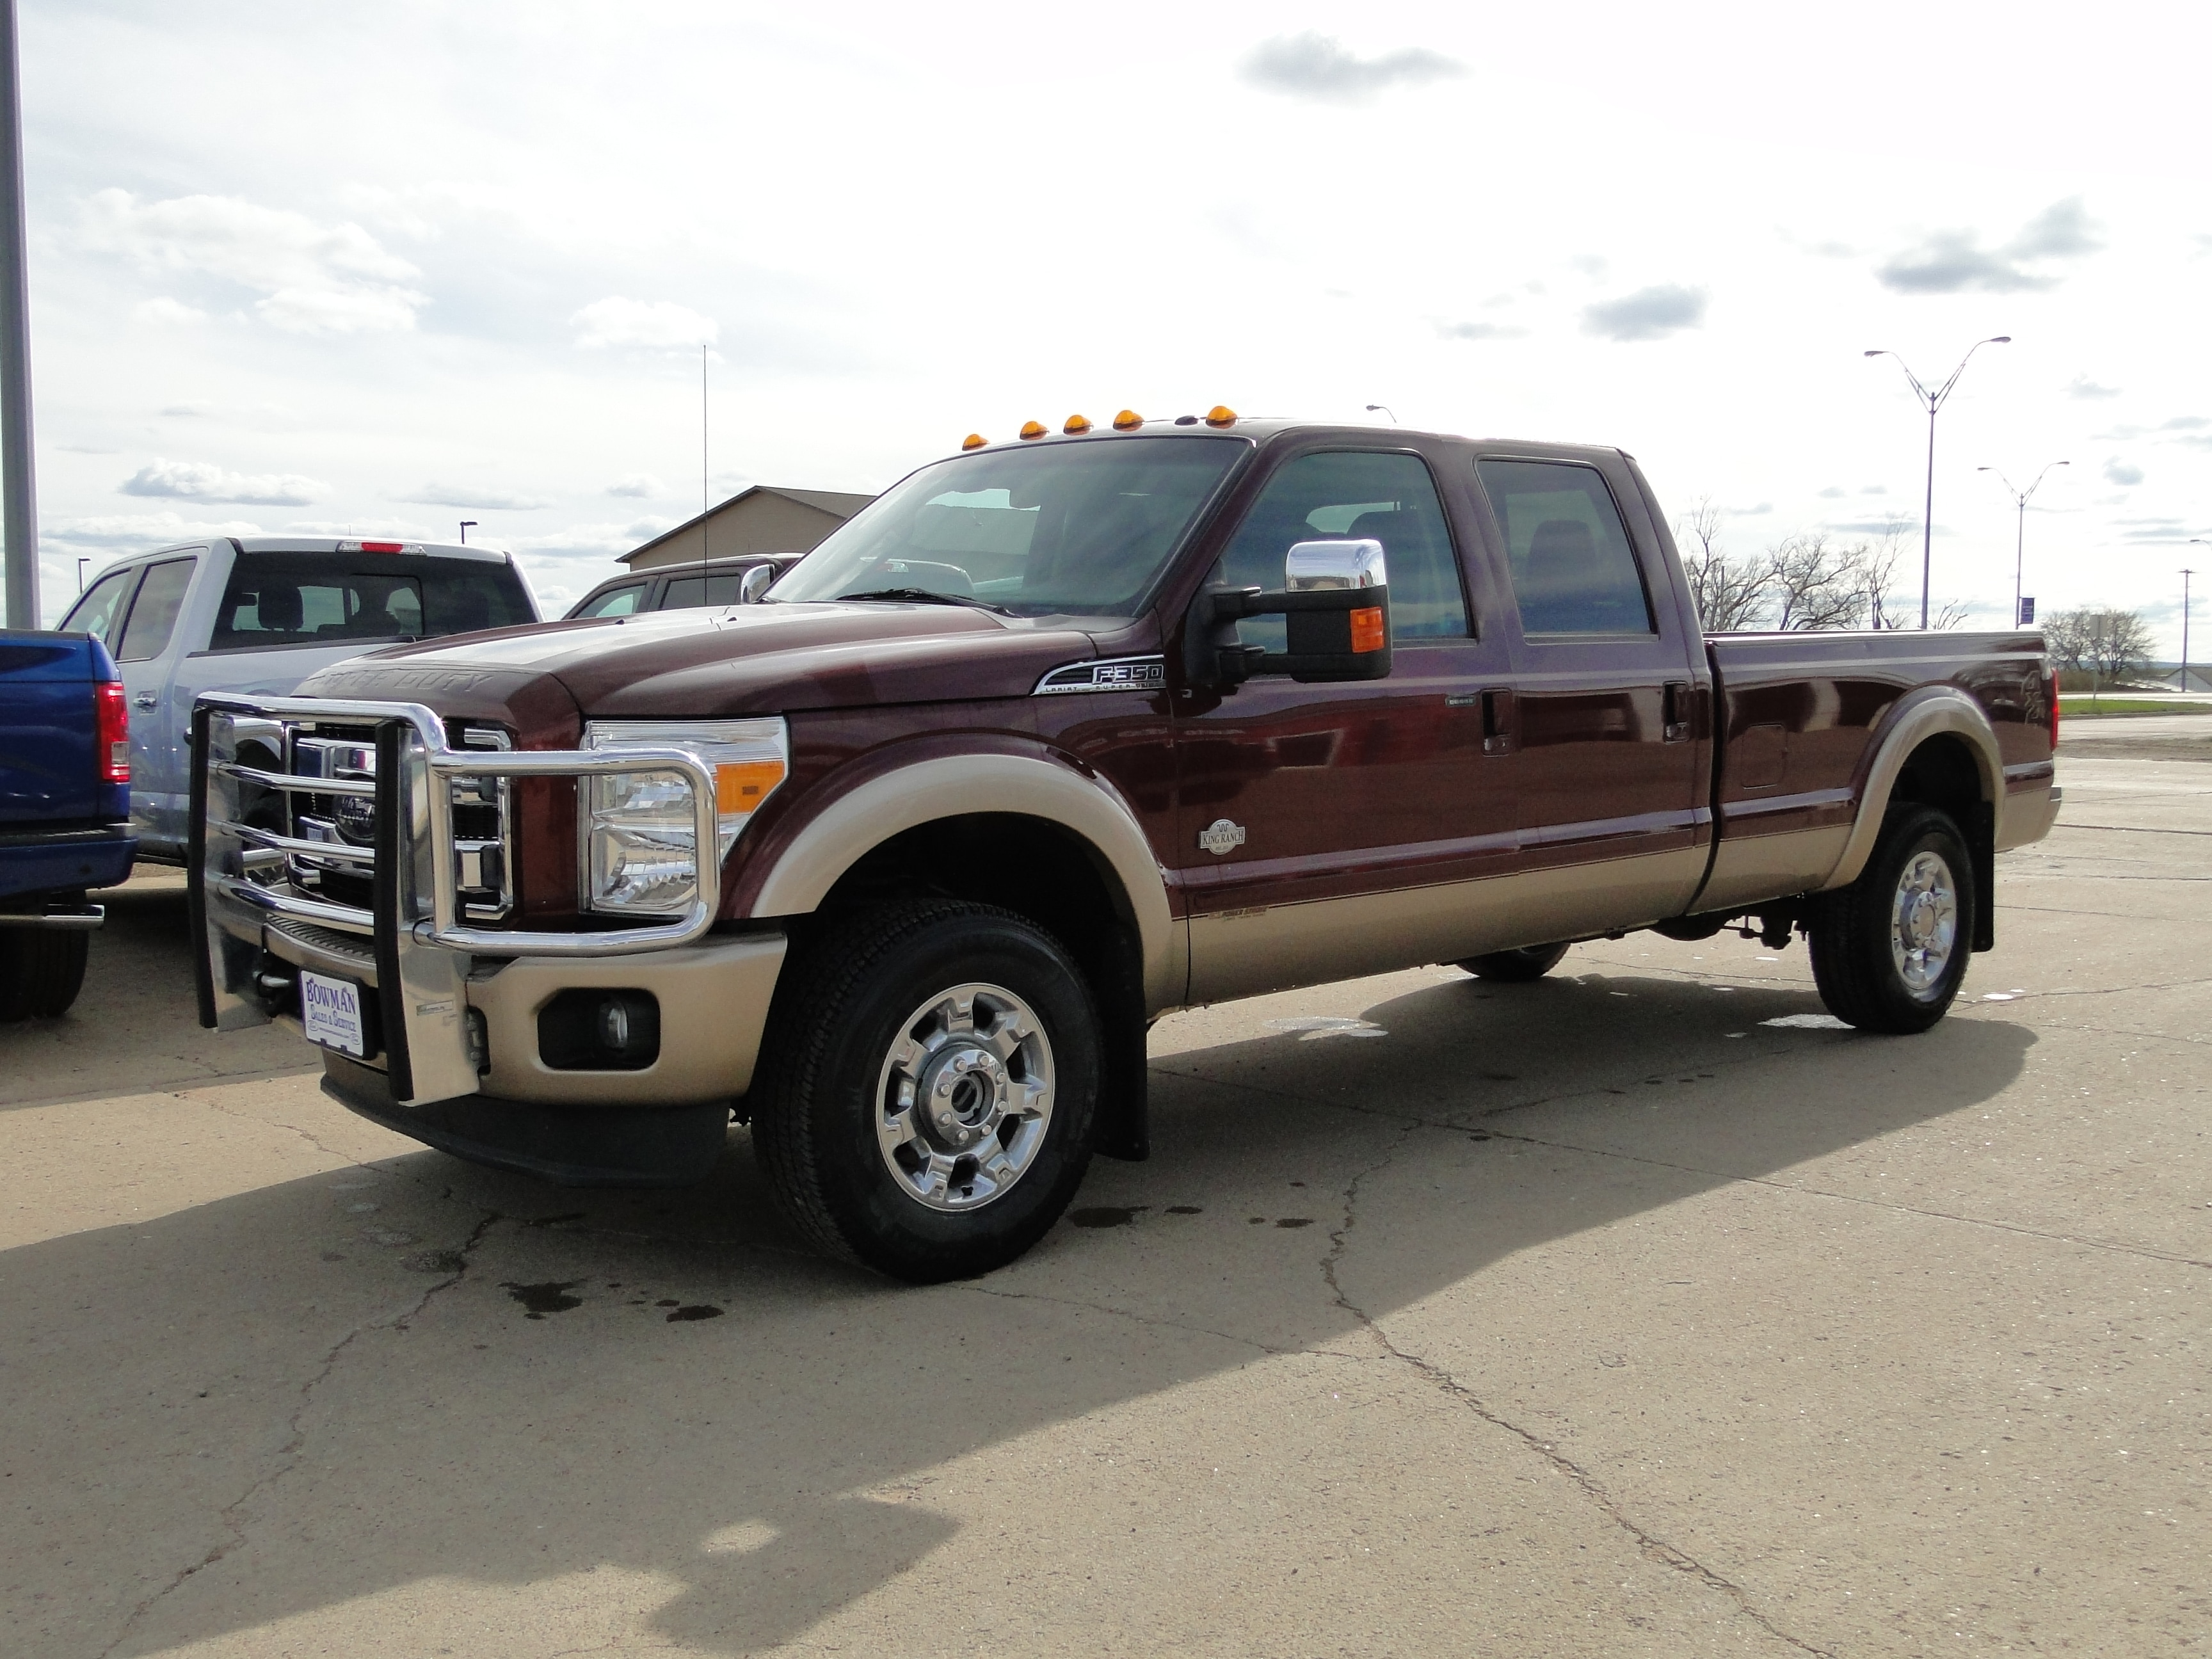 2012 Ford F-350 Crew Cab Truck